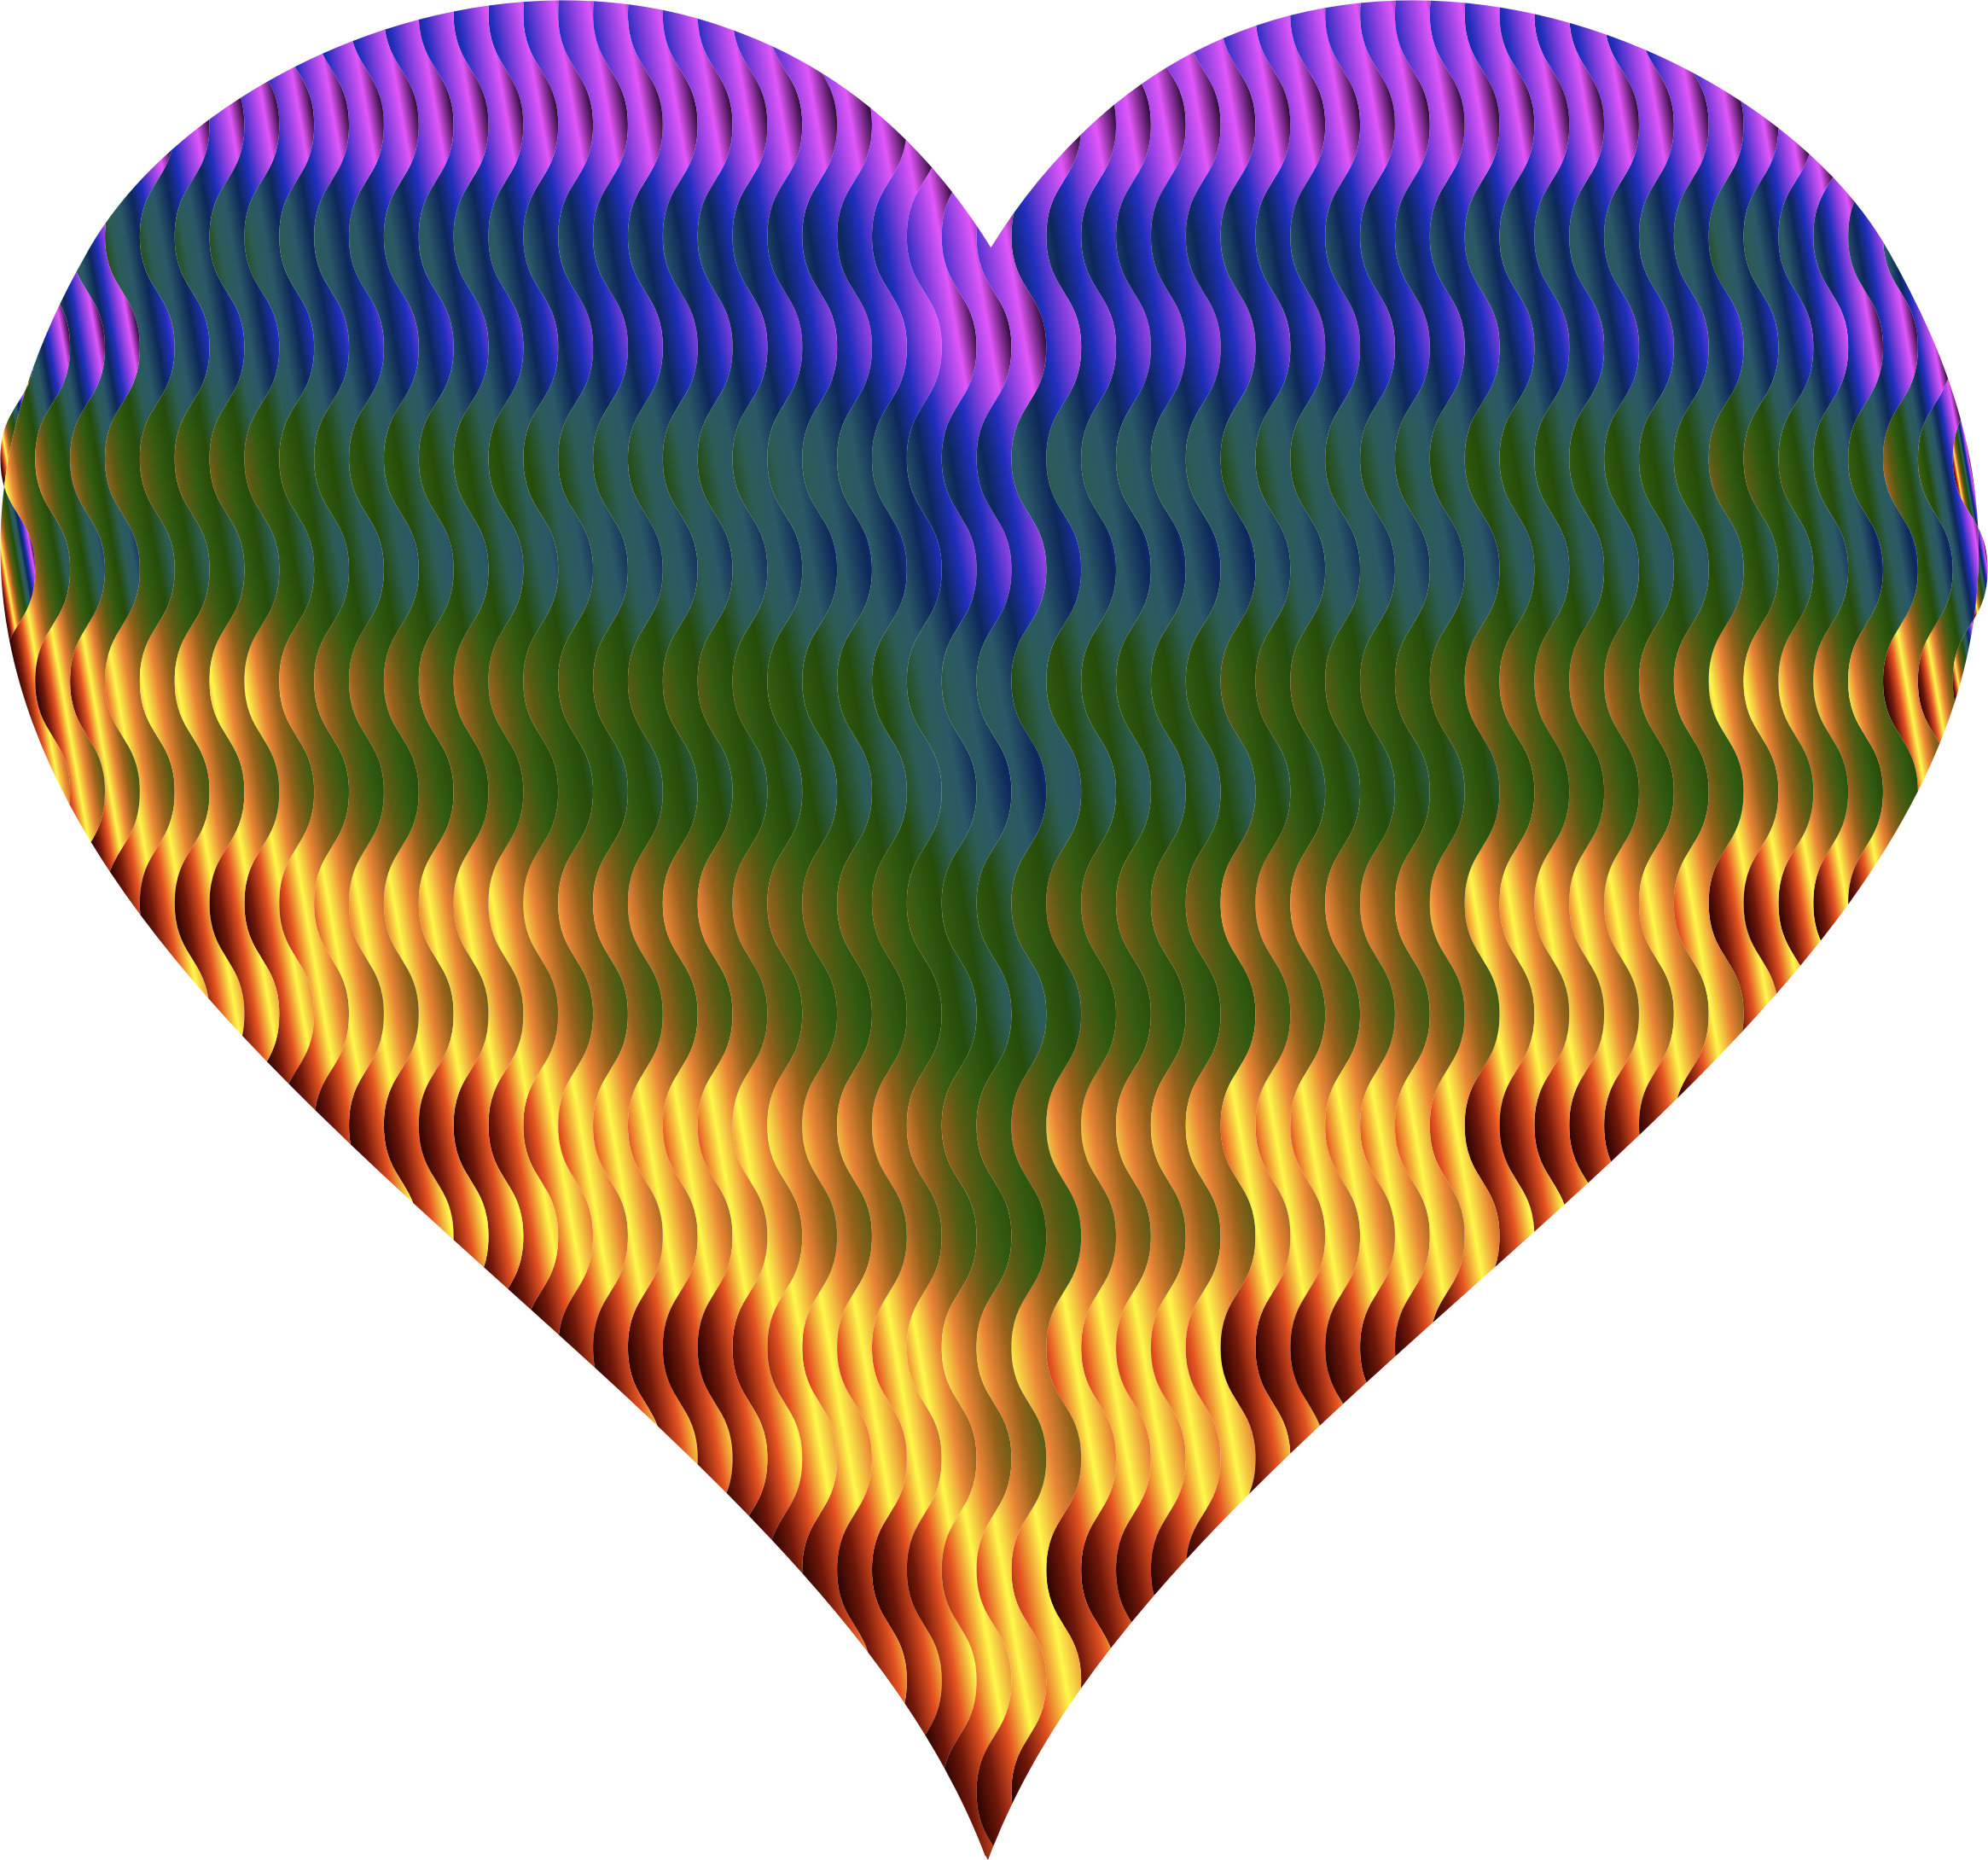 Colorful Wavy Heart 5 by GDJ